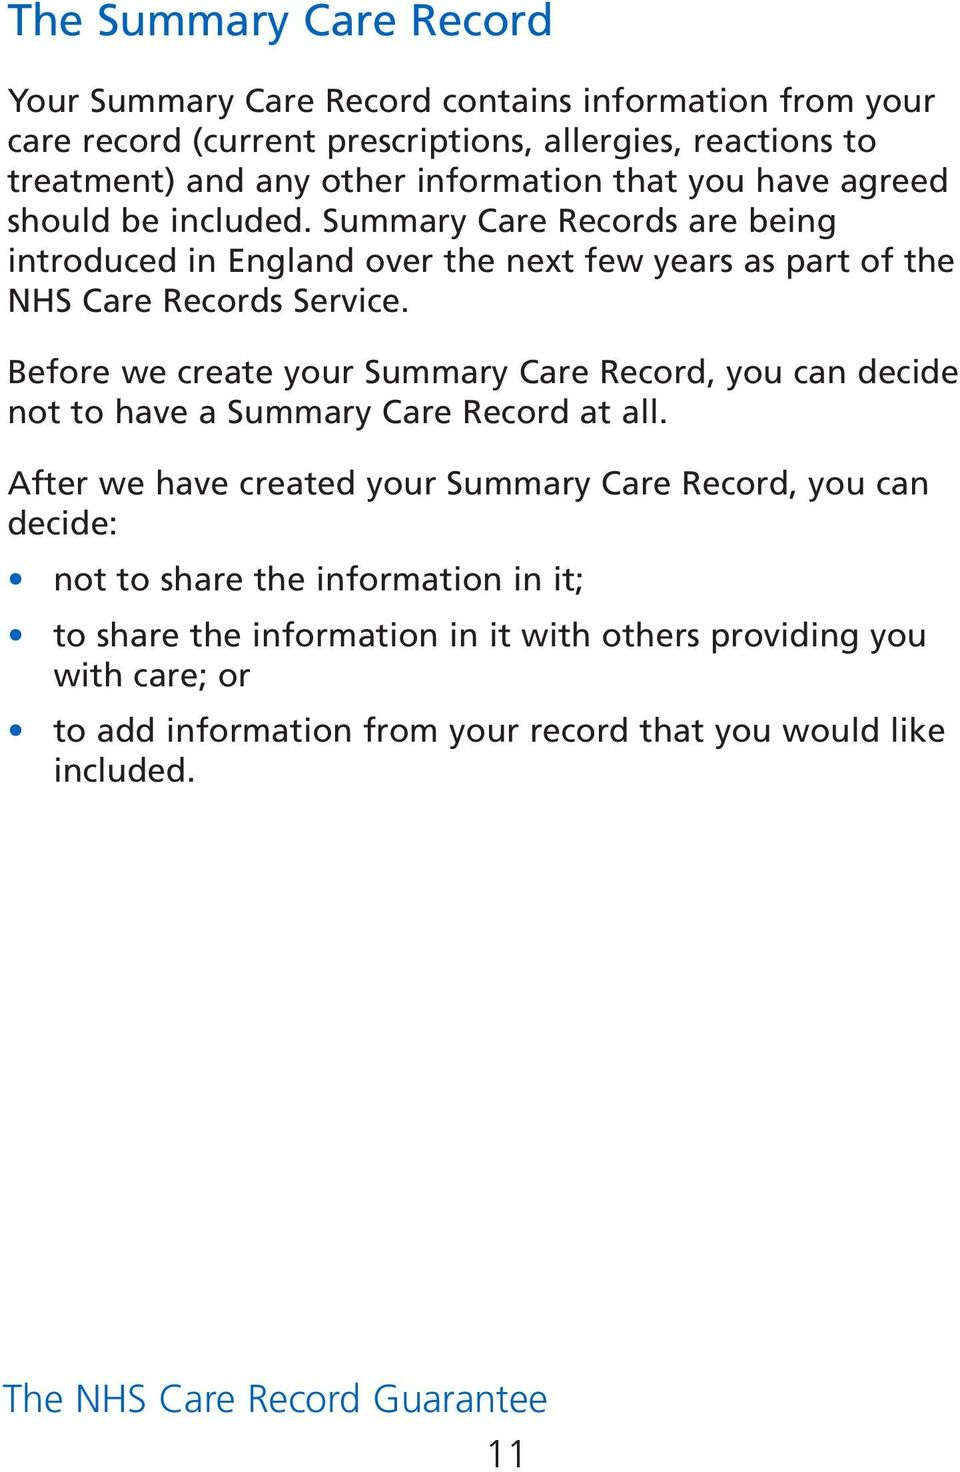 Summary Care Records are being introduced in England over the next few years as part of the NHS Care Records Service.